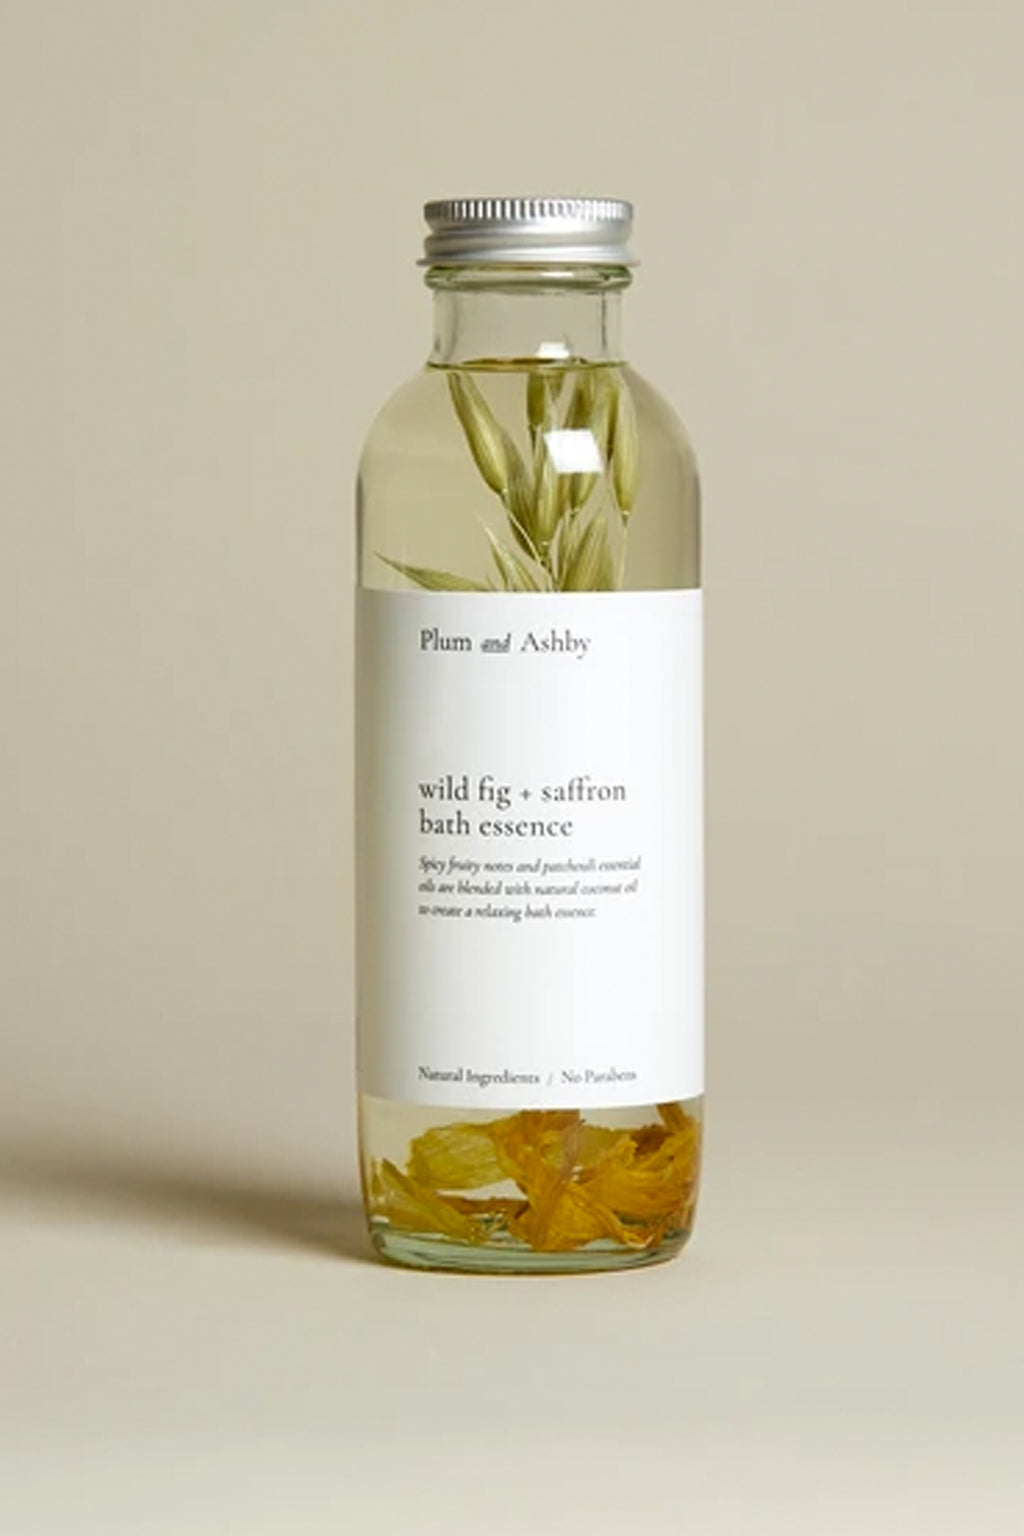 Plum & Ashby Wild Fig & Saffron Bath Essence - The Mercantile London